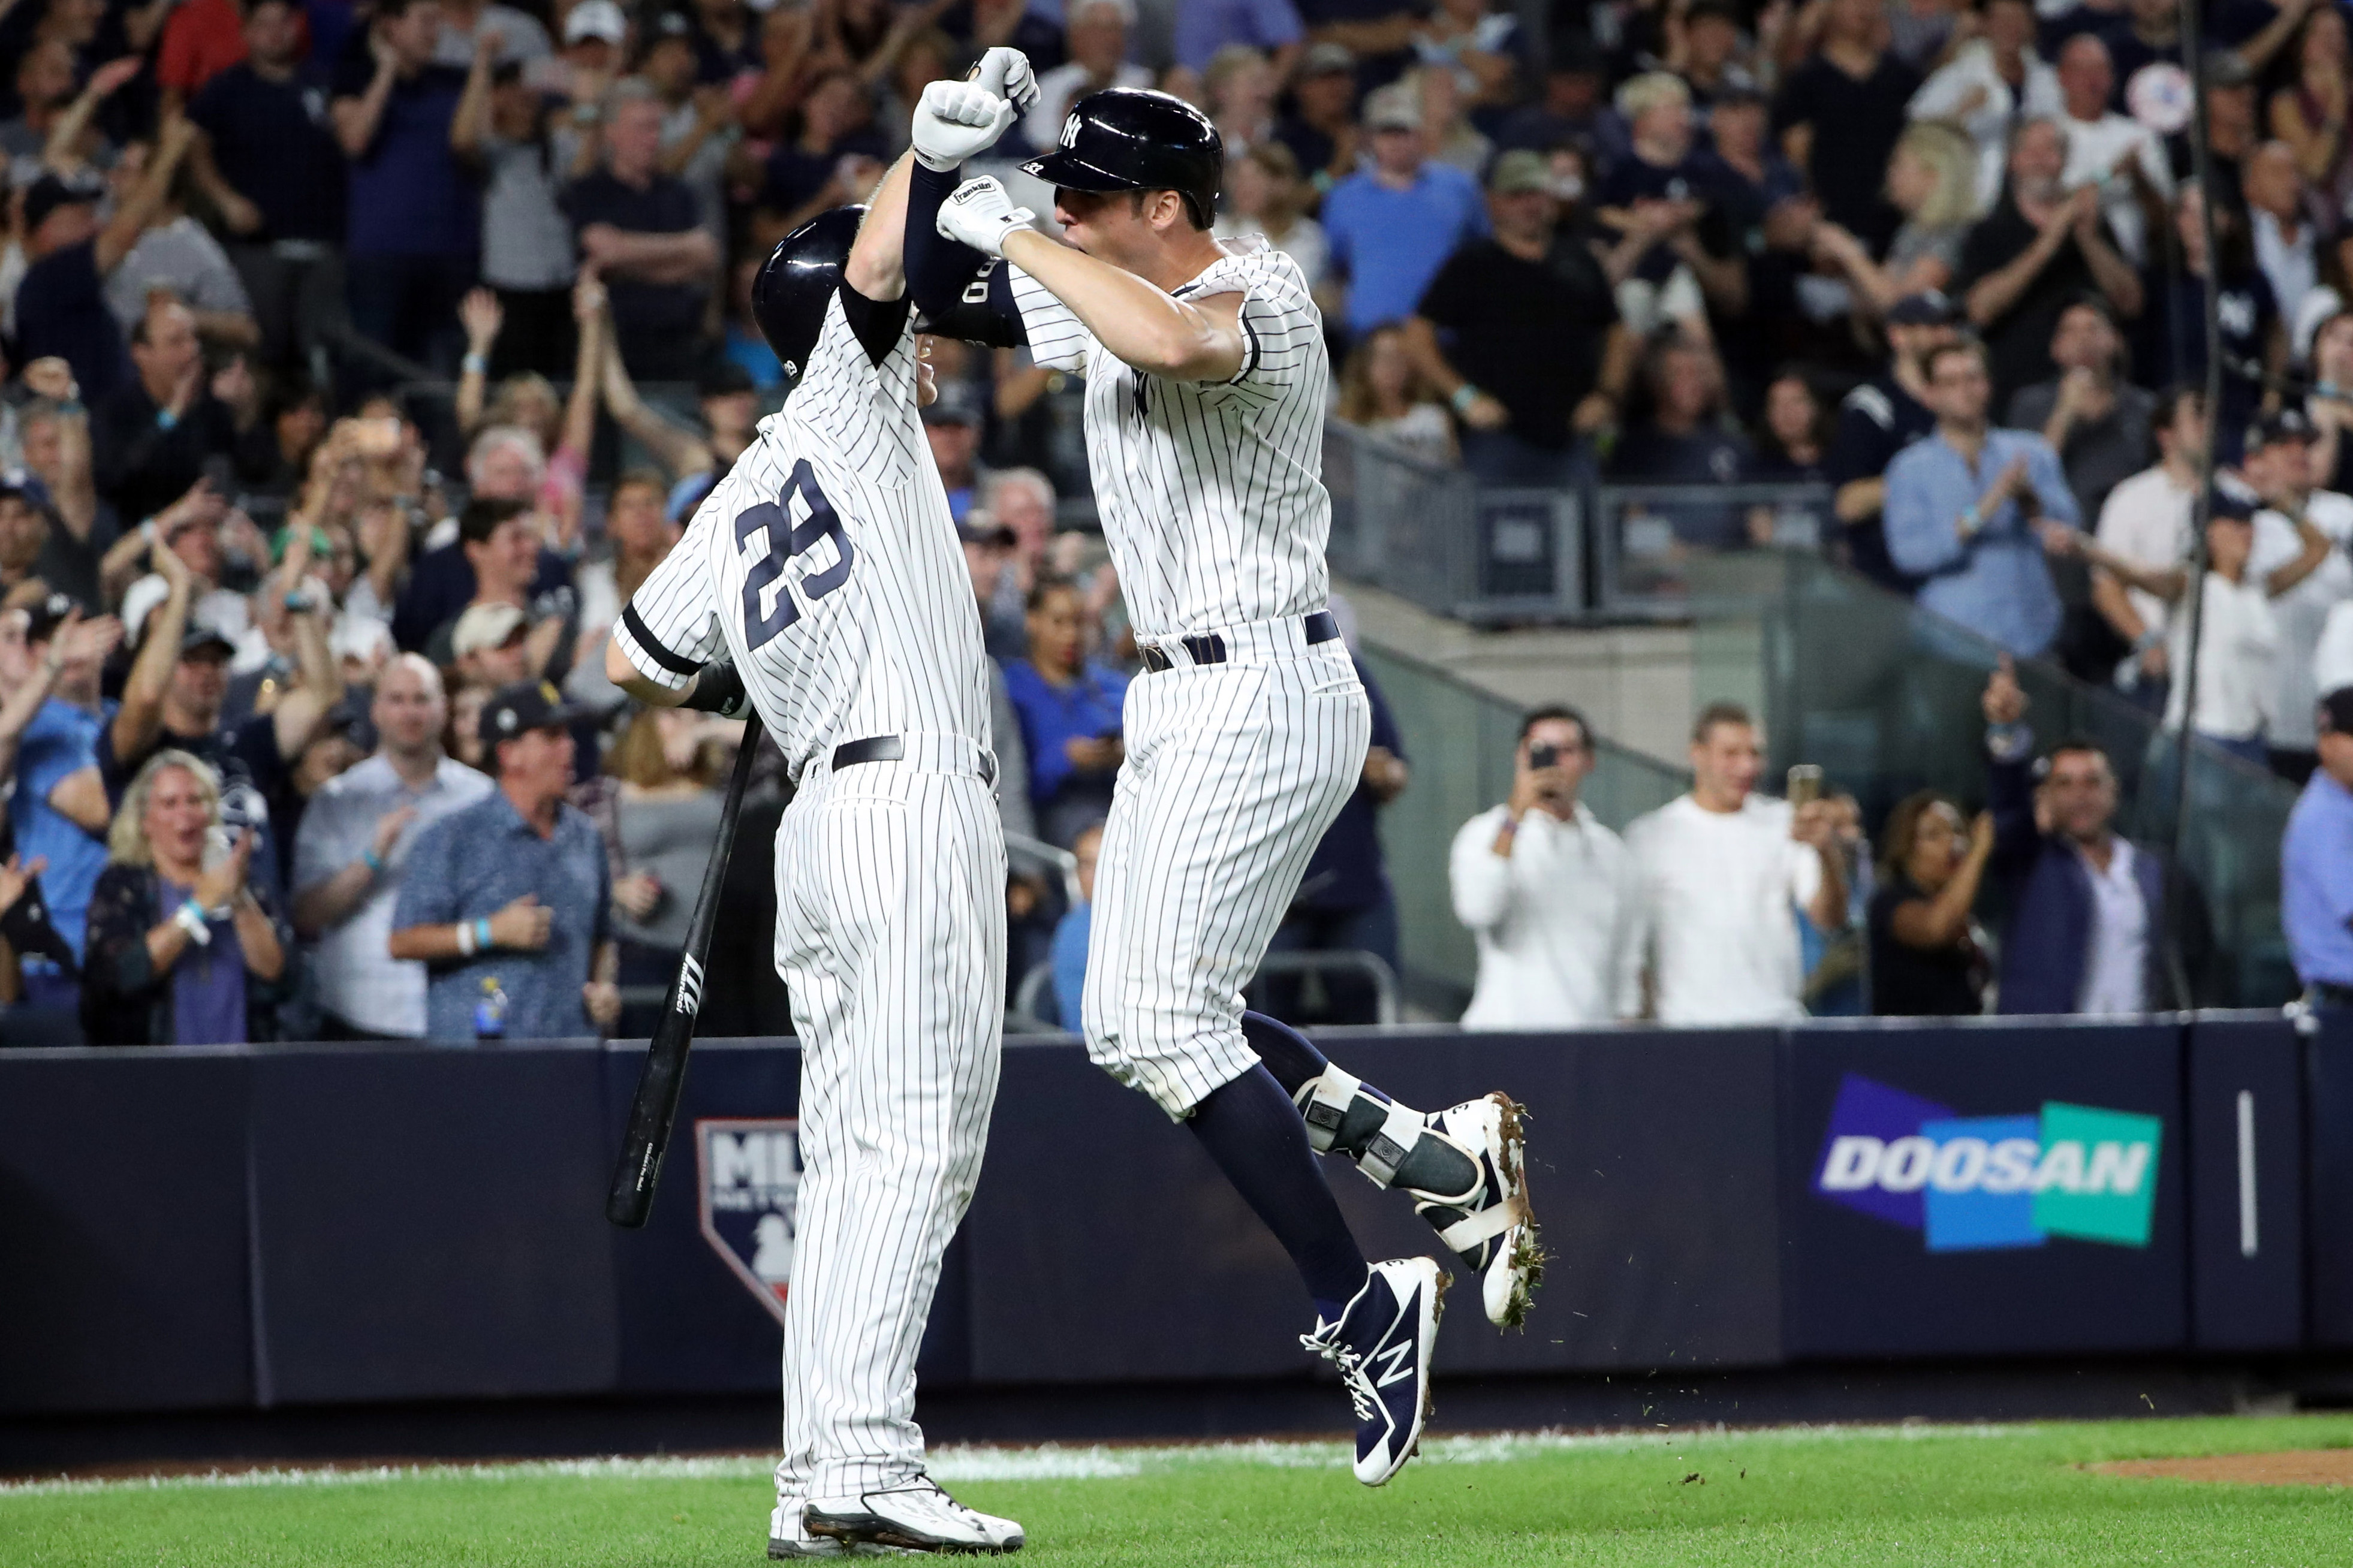 Yankees stay alive, win tense pitcher's duel against Indians